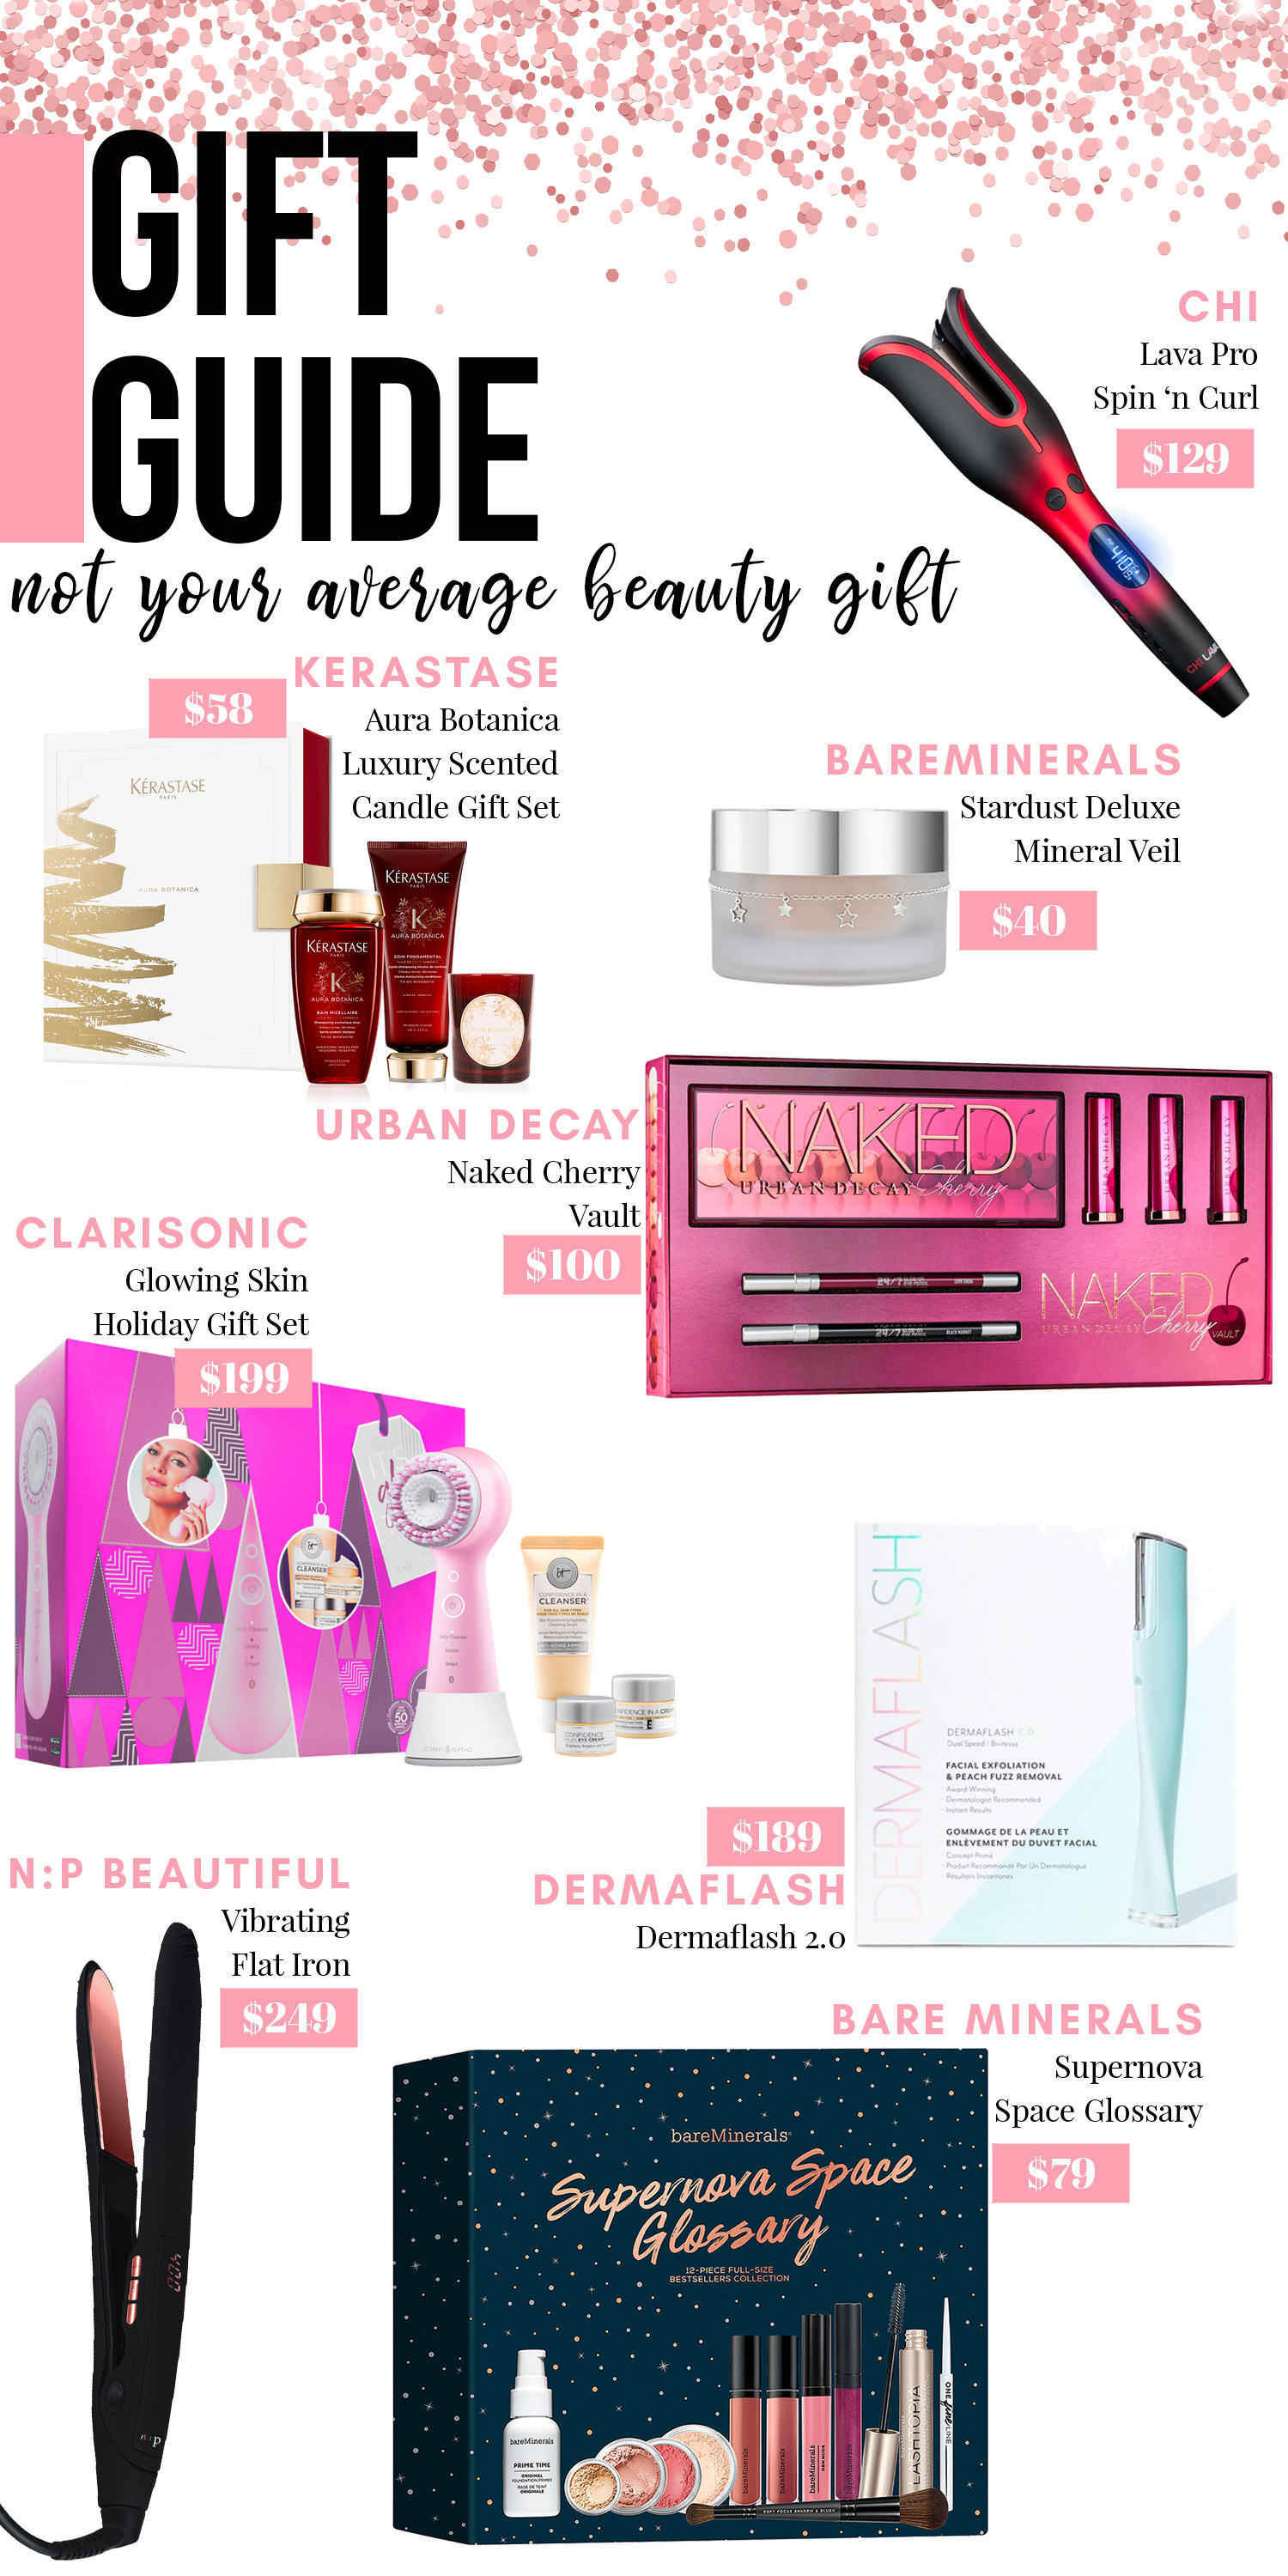 Holiday Gift Guide: Not Your Average Beauty Gift